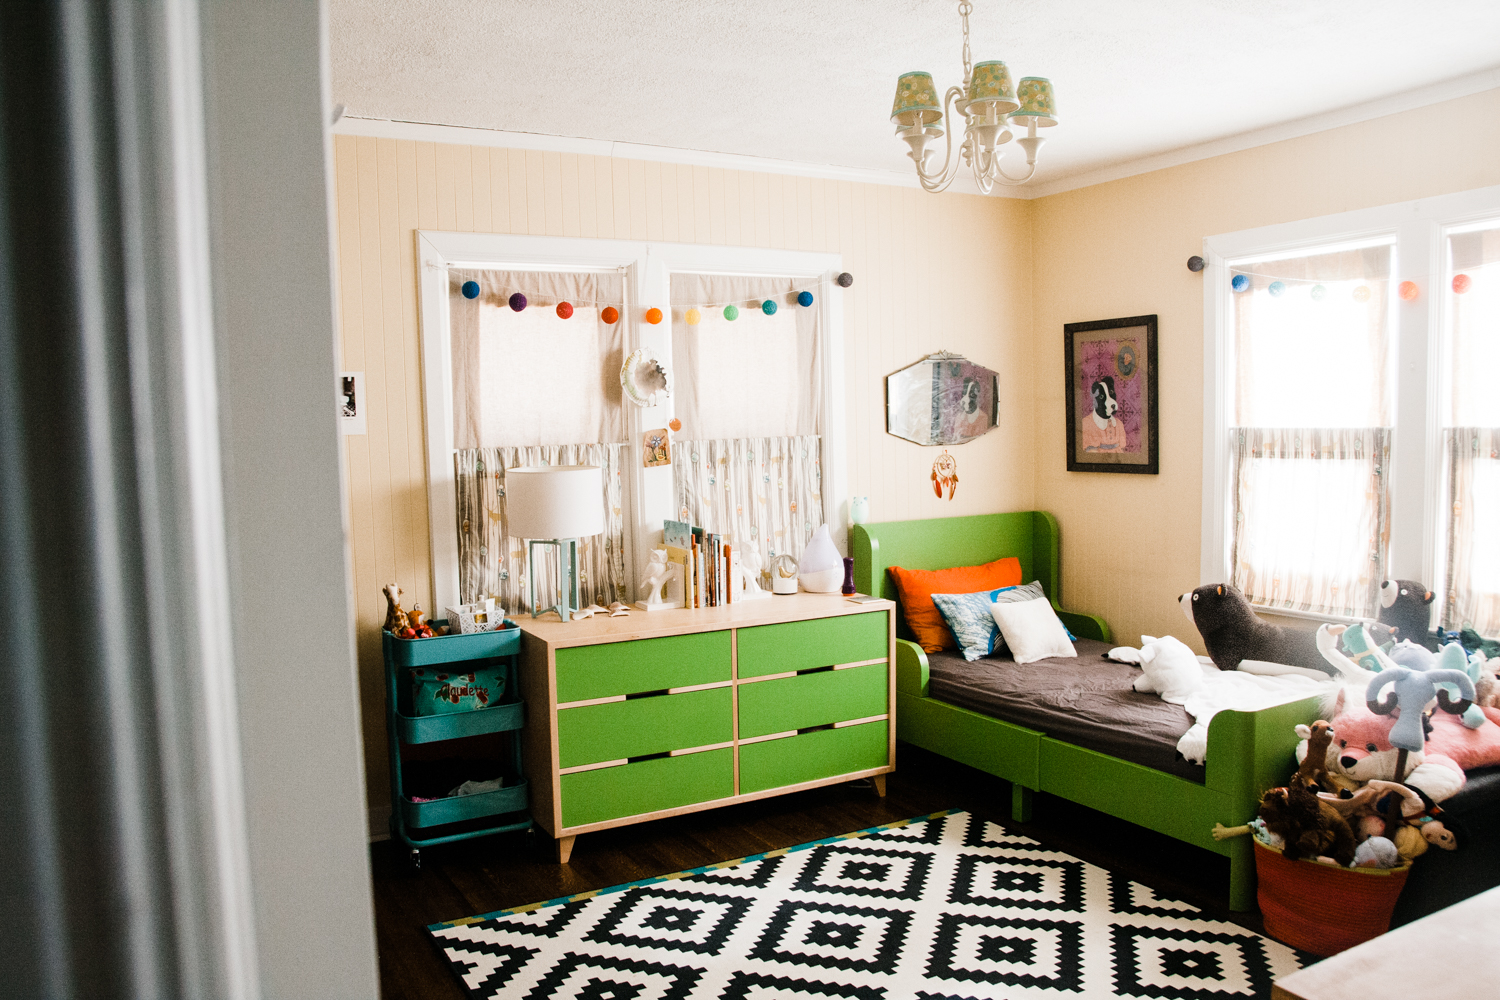 Claudette's room is so bright, colorful and filled with meaningful artwork and family photos. Also, lucky girl, her grandfather built her bedroom furniture!